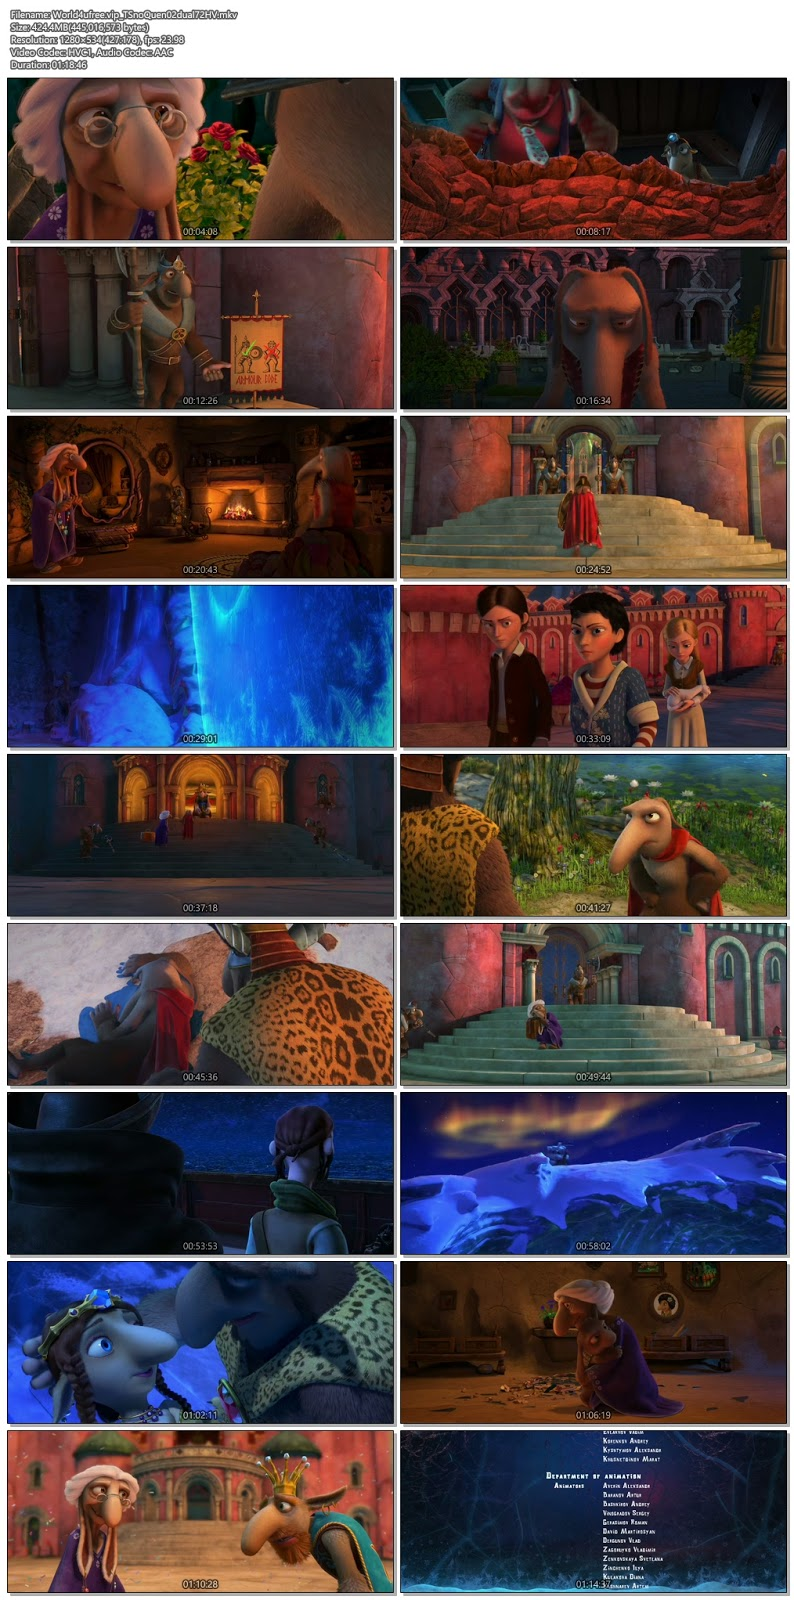 The Snow Queen 2 2014 Dual Audio 720p BRRip 400Mb HEVC x265 world4ufree.vip, hollywood movie The Snow Queen 2 2014 hindi dubbed dual audio hindi english languages original audio 720p BRRip hdrip free download 700mb movies download or watch online at world4ufree.vip